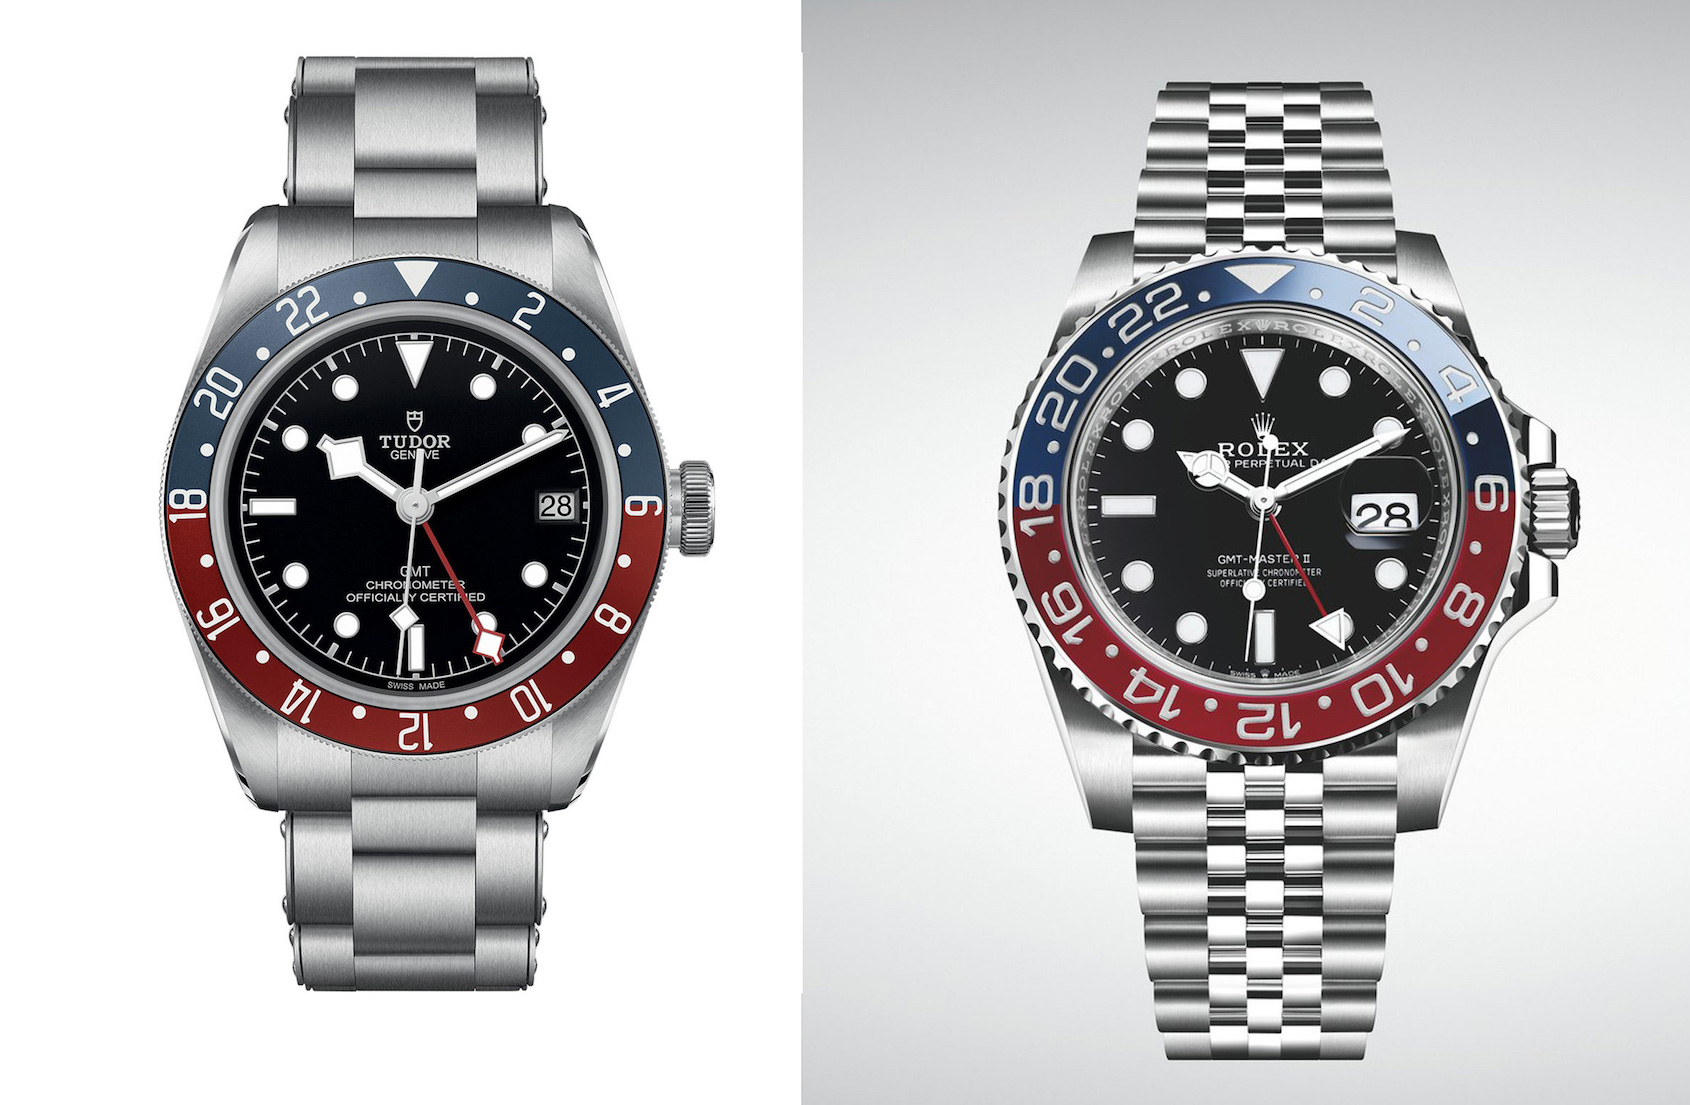 NEWS: Tudor and Rolex in the battle of the Pepsi GMTs gives Basel 2018 its first big moment